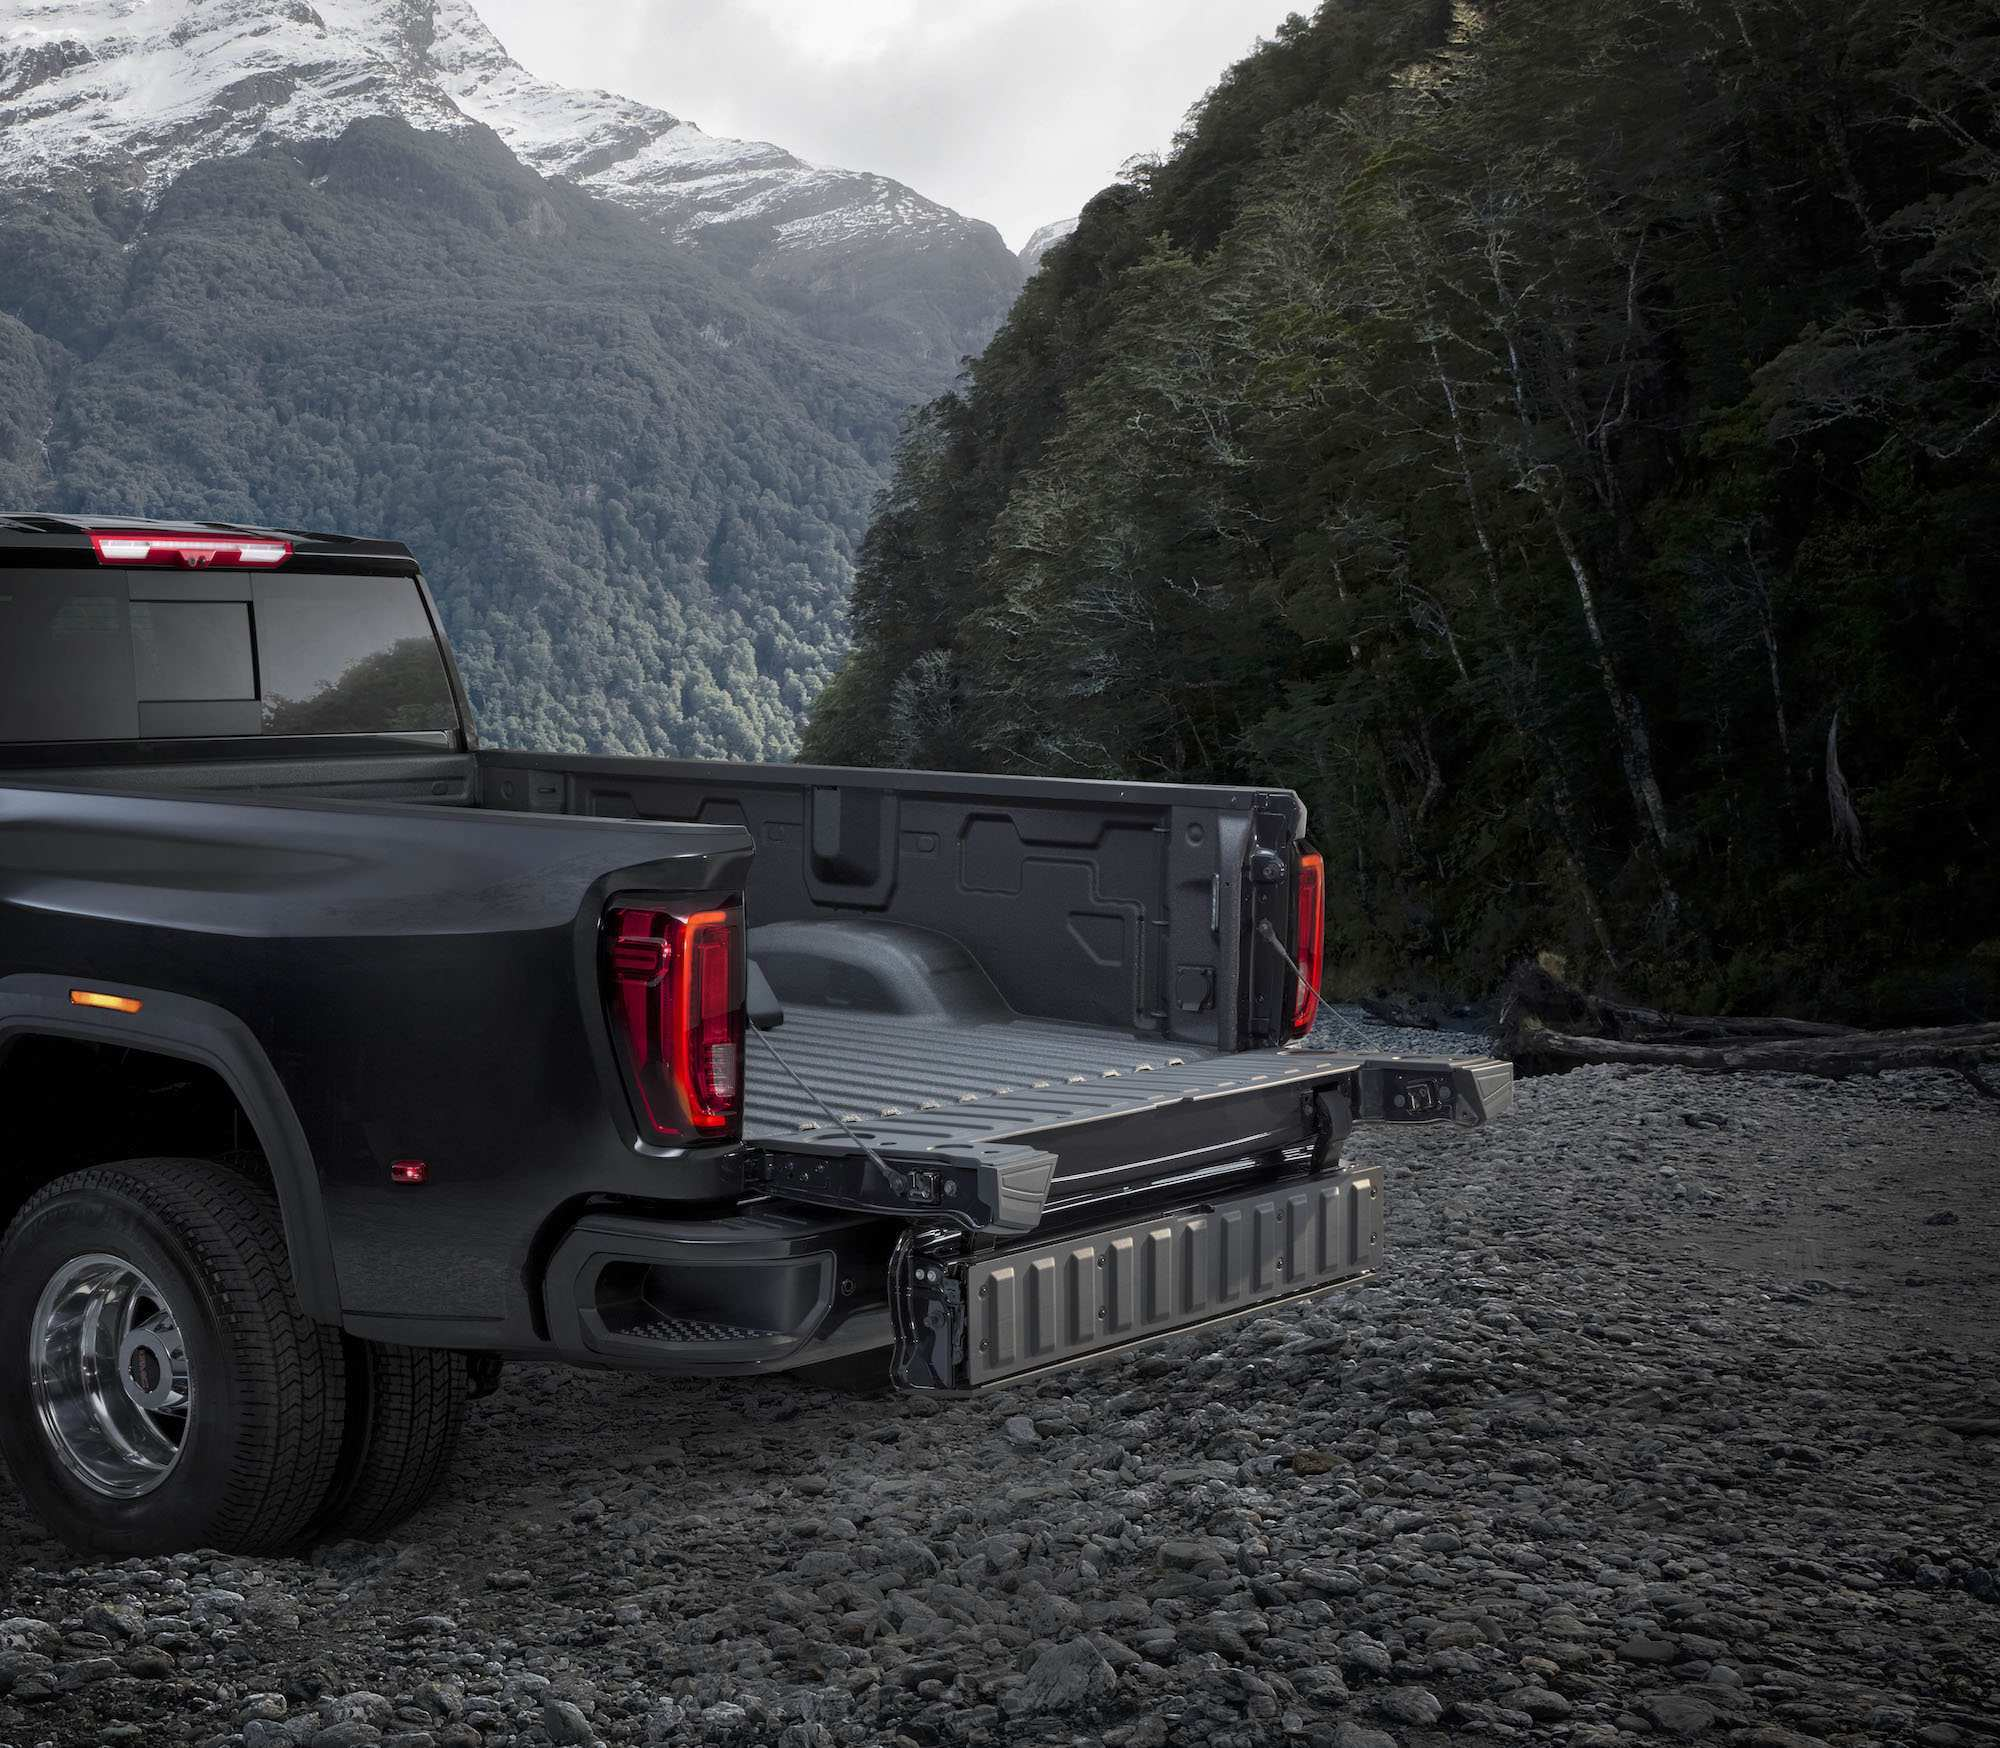 64 The Best 2020 Gmc X Ray Vision Review And Release Date